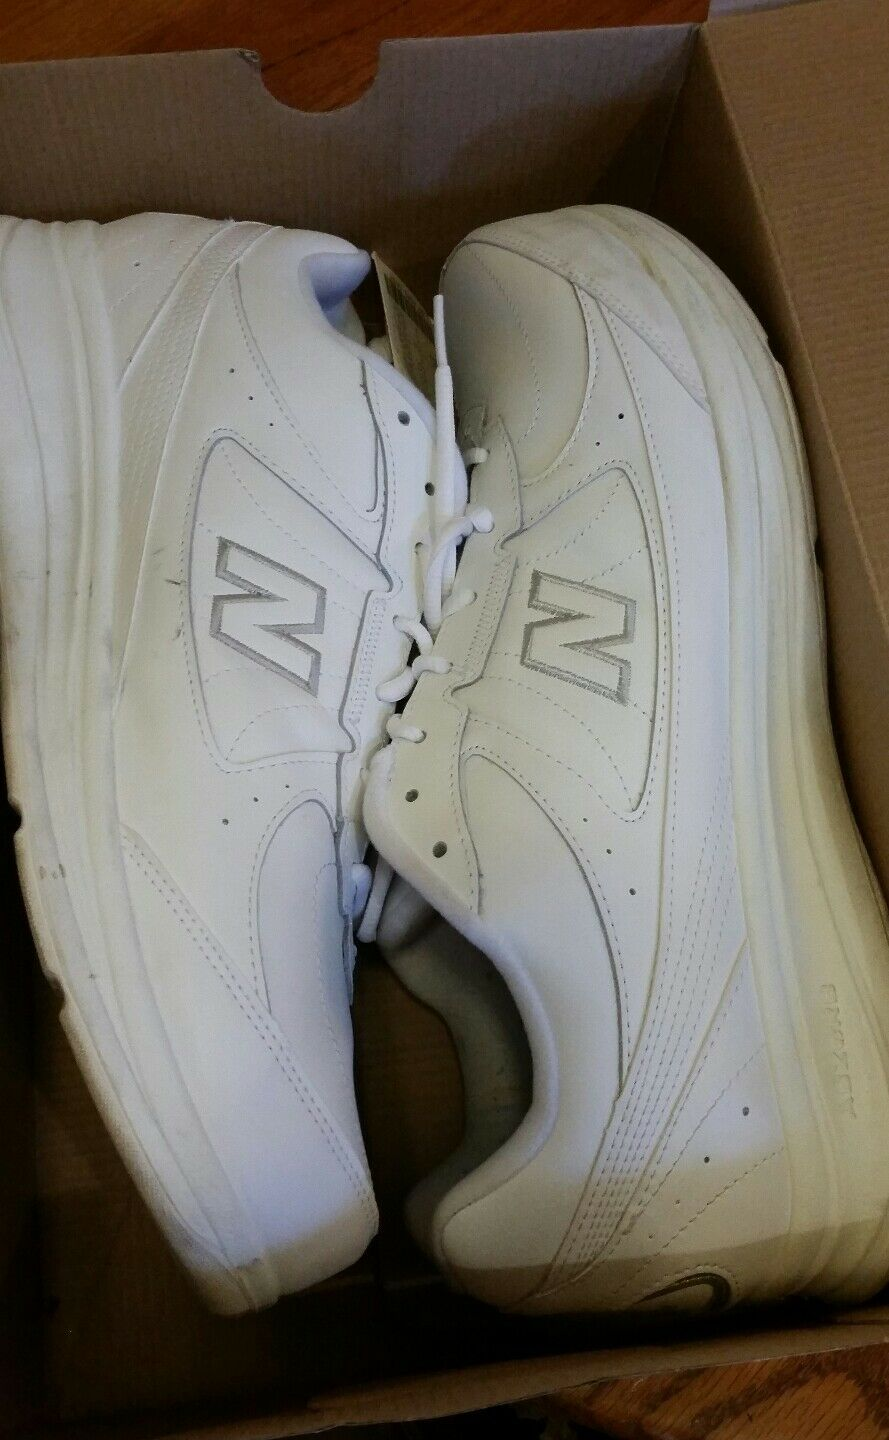 New Balance MW577WT Walking Running shoes Lace Up Men's White Size 15 4E in box